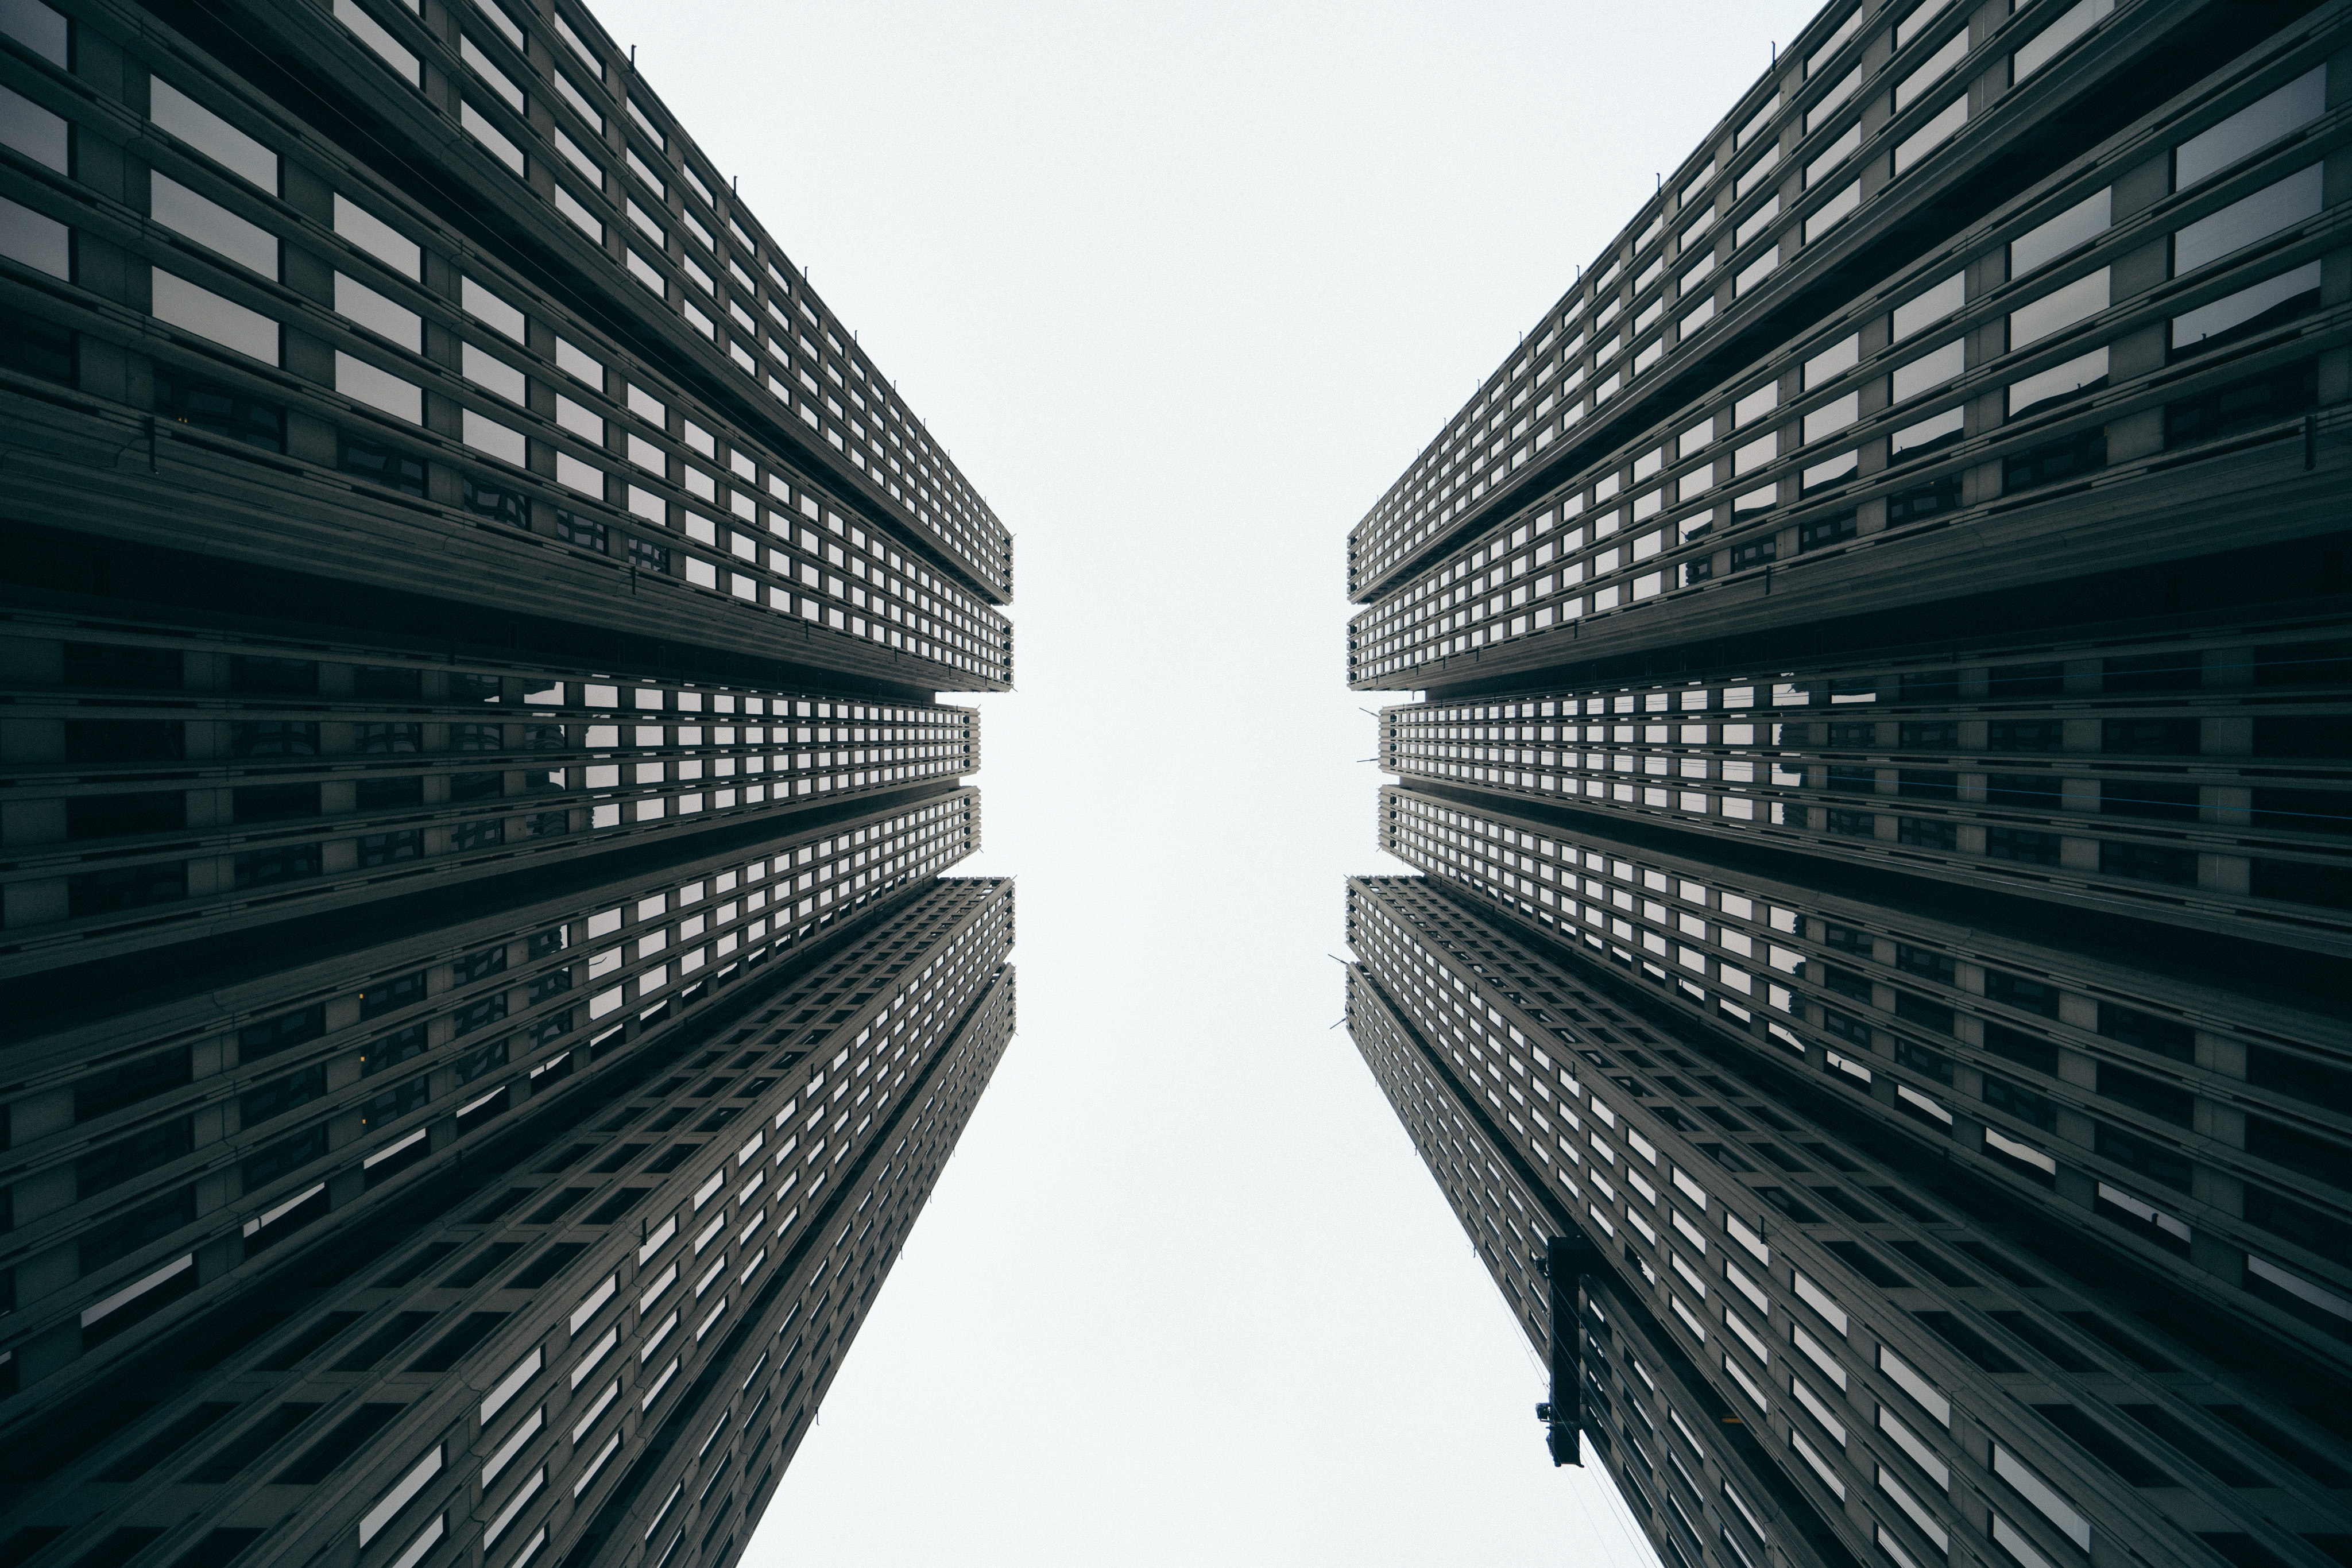 A low-angle shot of two twin skyscrapers in San Francisco